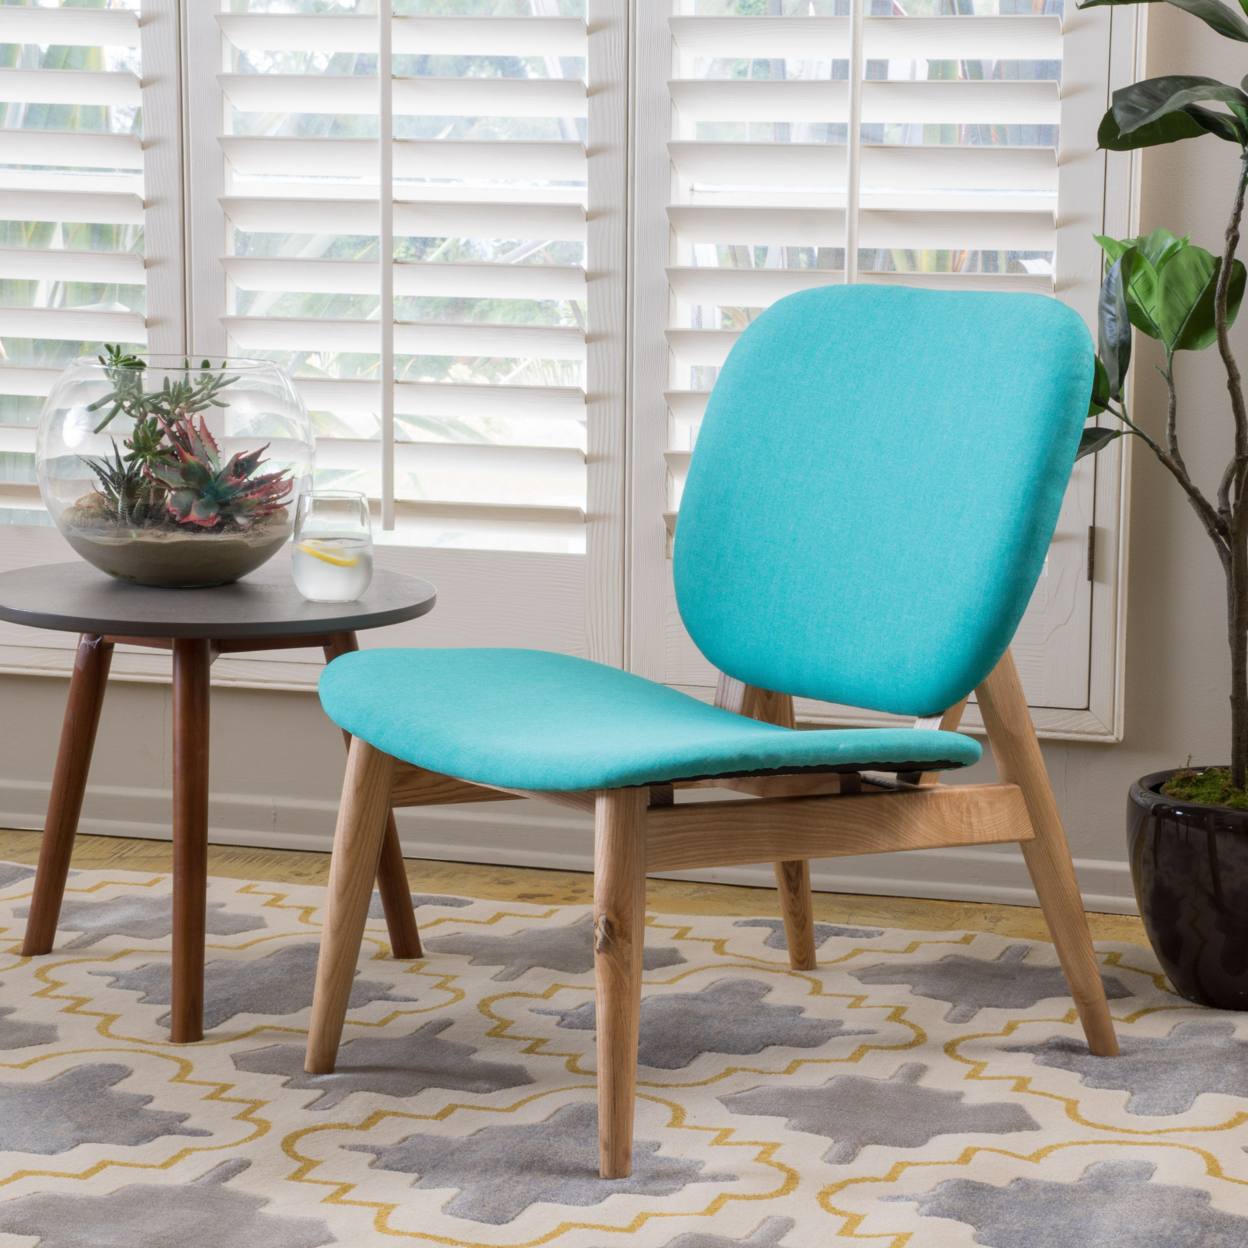 Anso Contemporary Teal Color Fabric Accent Chair anso contemporary teal color fabric accent chair